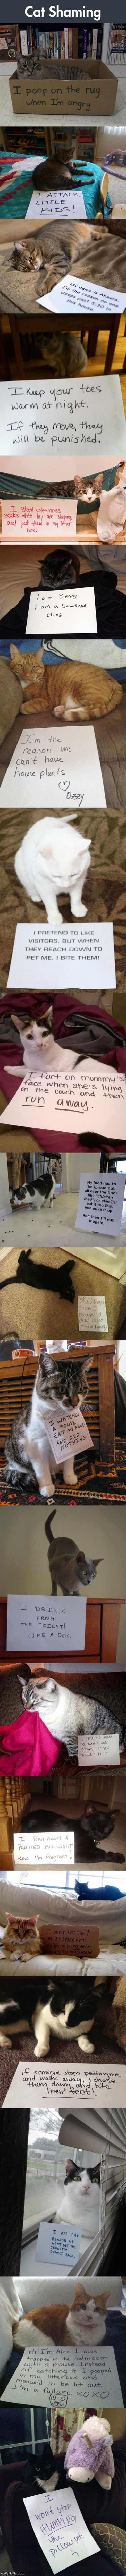 cat shaming funny picture